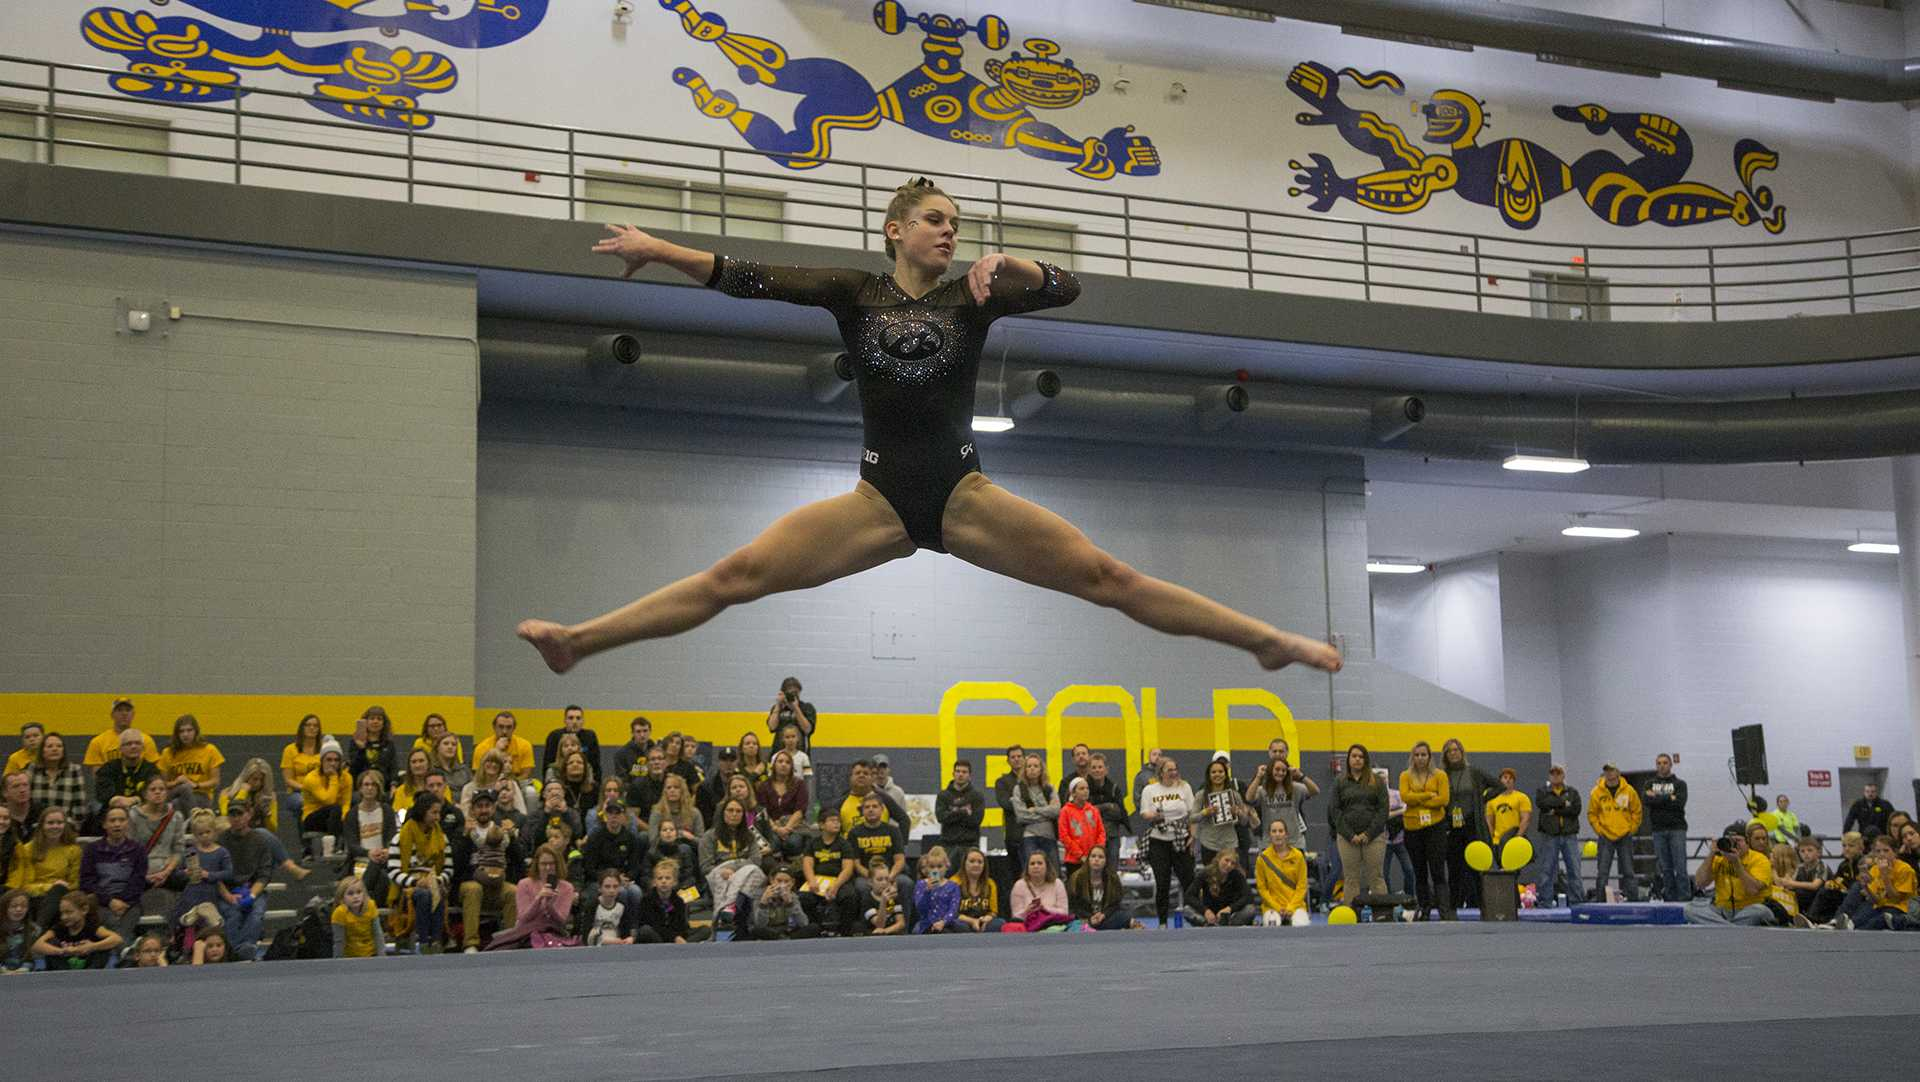 Gymnasts during the Black and Gold Intrasquad meet at the Field House on Saturday, Dec. 2, 2017.  The Gold team defeated the Black team, 13-7. (Lily Smith/The Daily Iowan)